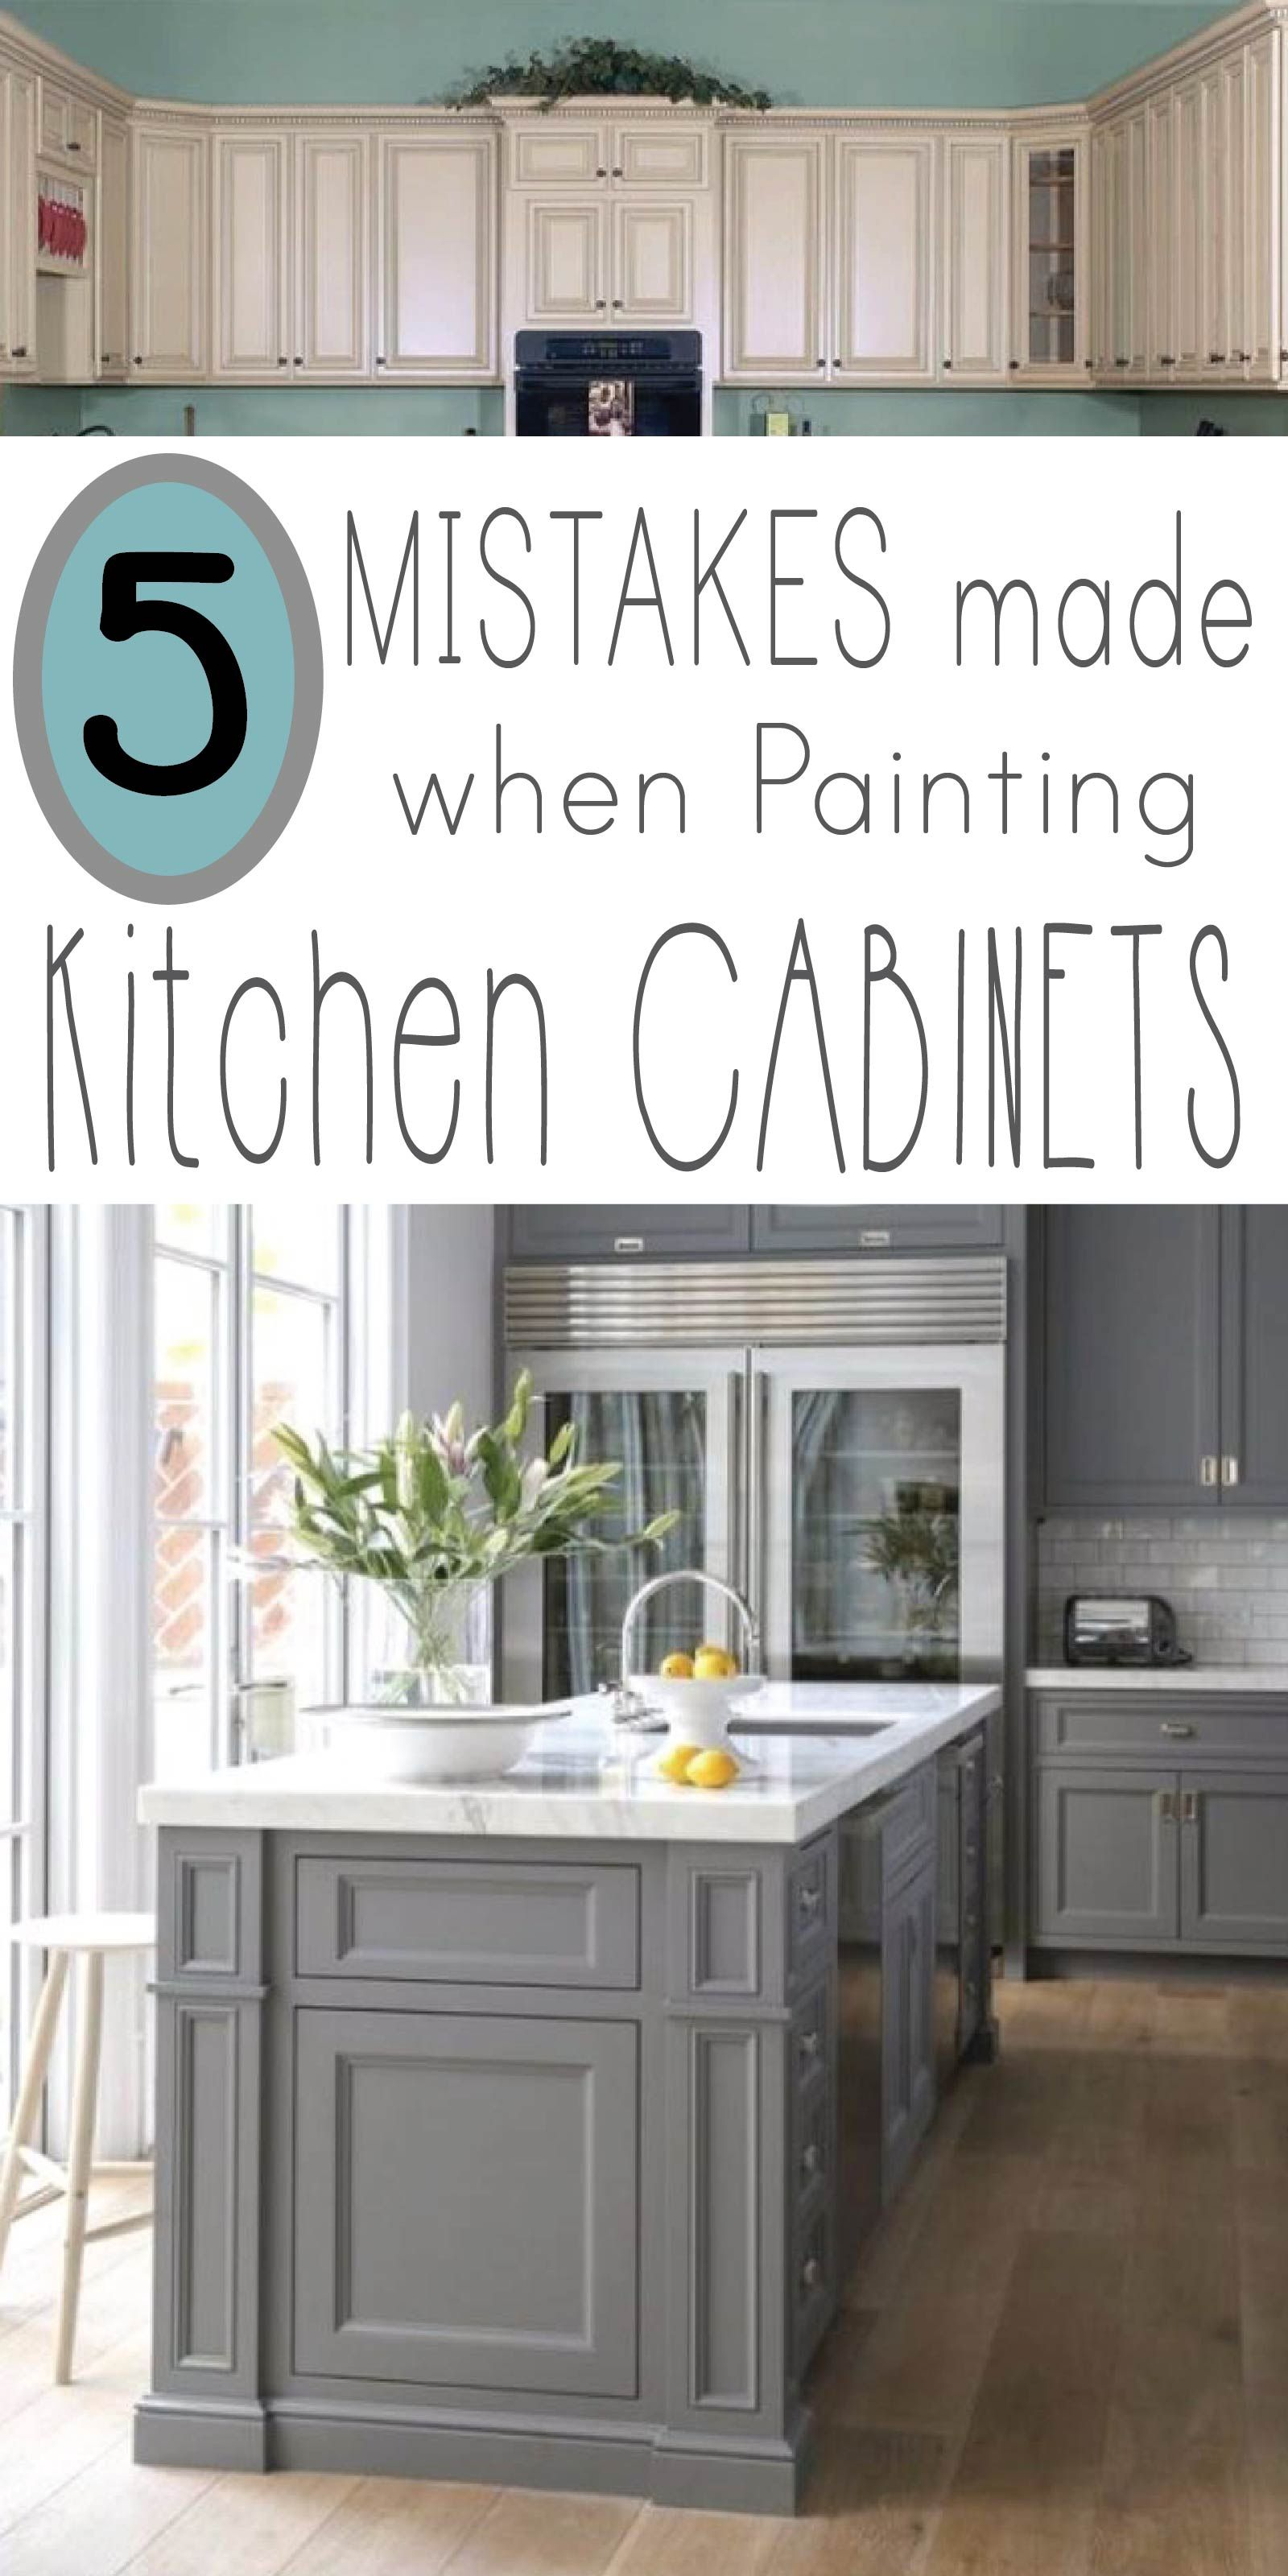 Mistakes People Make When Painting Kitchen Cabinets in 2018 | House on paint kitchen faucet, painting cabinets, paint wooden stairs, painting kitchen cabinets, refinishing kitchen cabinets, paint cultured marble, cheap kitchen cabinets, paint kitchen tables, paint carpet cabinets, paint kitchen floors, white kitchen cabinets, kitchen cabinet doors, best colors to paint cabinets, paint for cabinets, paint pantry cabinets, best kitchen cabinets, oak kitchen cabinets, paint garage cabinets, paint upper cabinets, paint butcher block countertops, paint black cabinets, paint kitchen before after, wholesale kitchen cabinets, corner kitchen cabinets, painted kitchen cabinets, paint bedroom set, paint appliances, buy kitchen cabinets, updating kitchen cabinets, bathroom paint, paint knotty pine cabinets, paint dining room sets, new kitchen cabinets, paint interior cabinets, paint wooden frames,